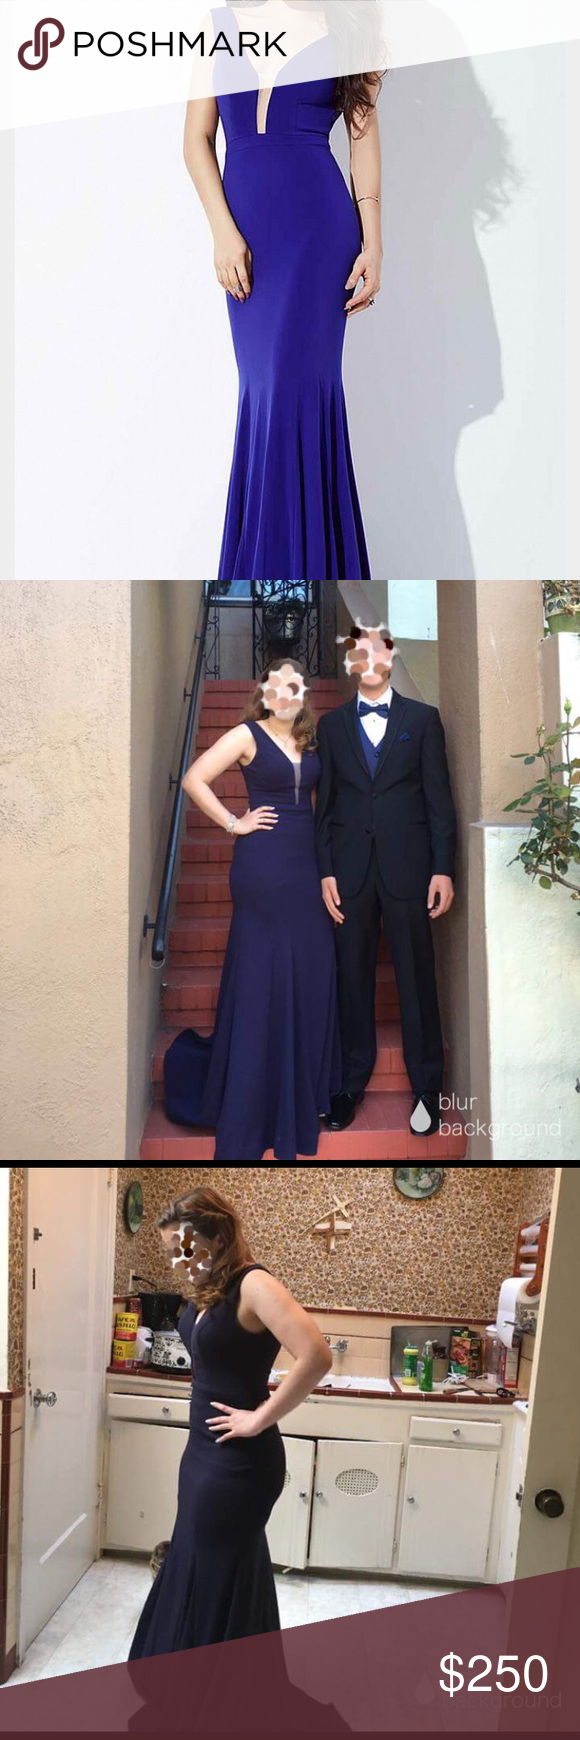 Navy blue prom dress dress is navy blue size worn twice the shop